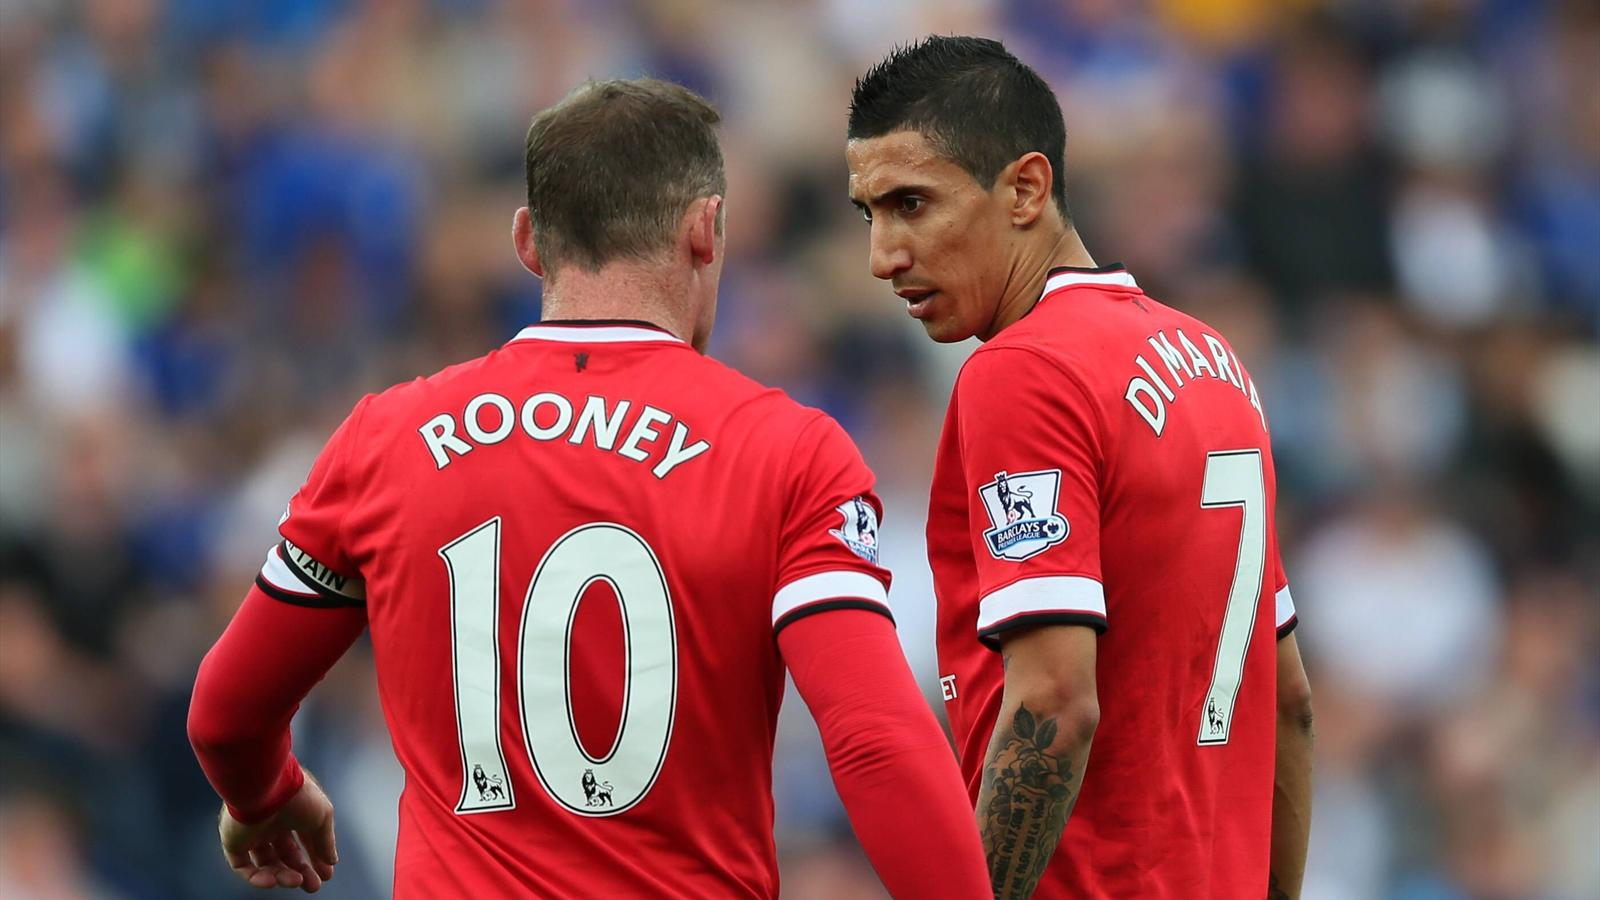 Angel Di Maria Playing With Wayne Rooney Just Like Playing With